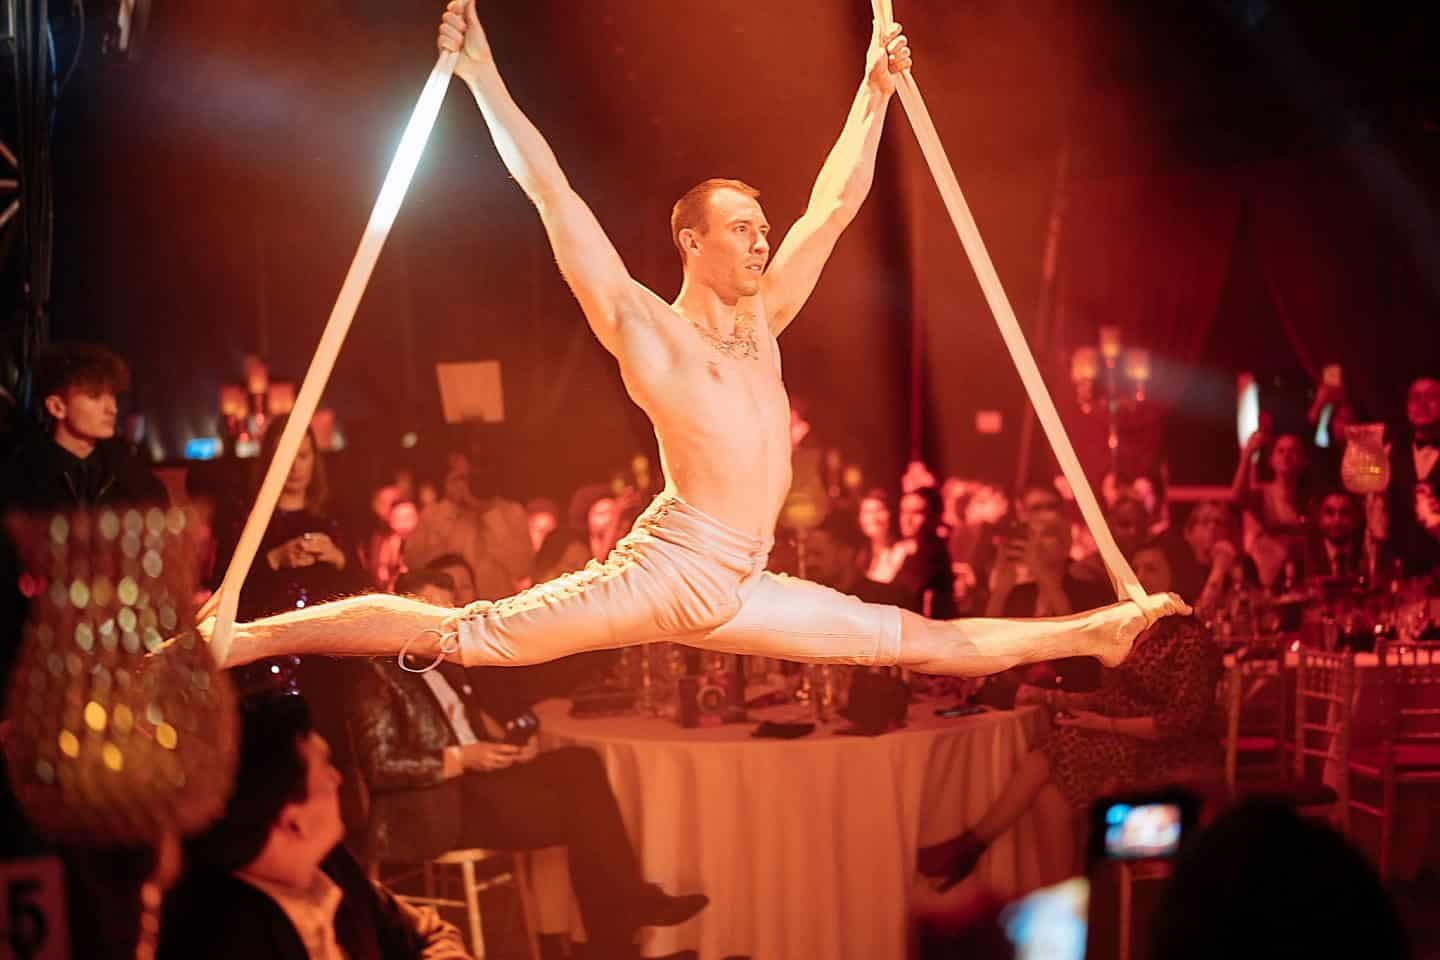 Vuelio Blog Awards 2018 at the Bloomsbury Big Top - acrobats dangling from the ceiling